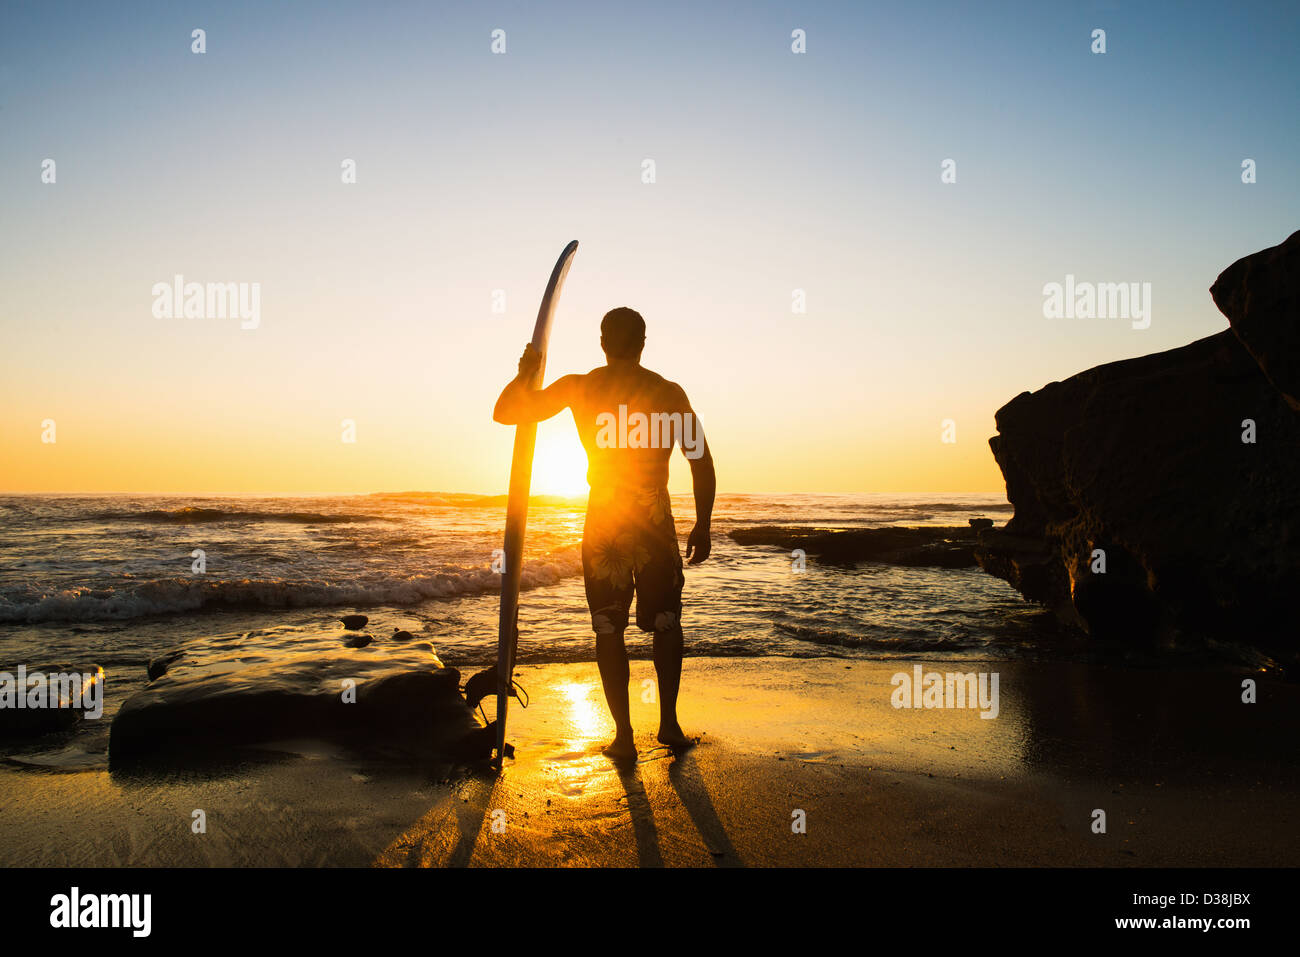 Man holding surfboard on rocky beach - Stock Image